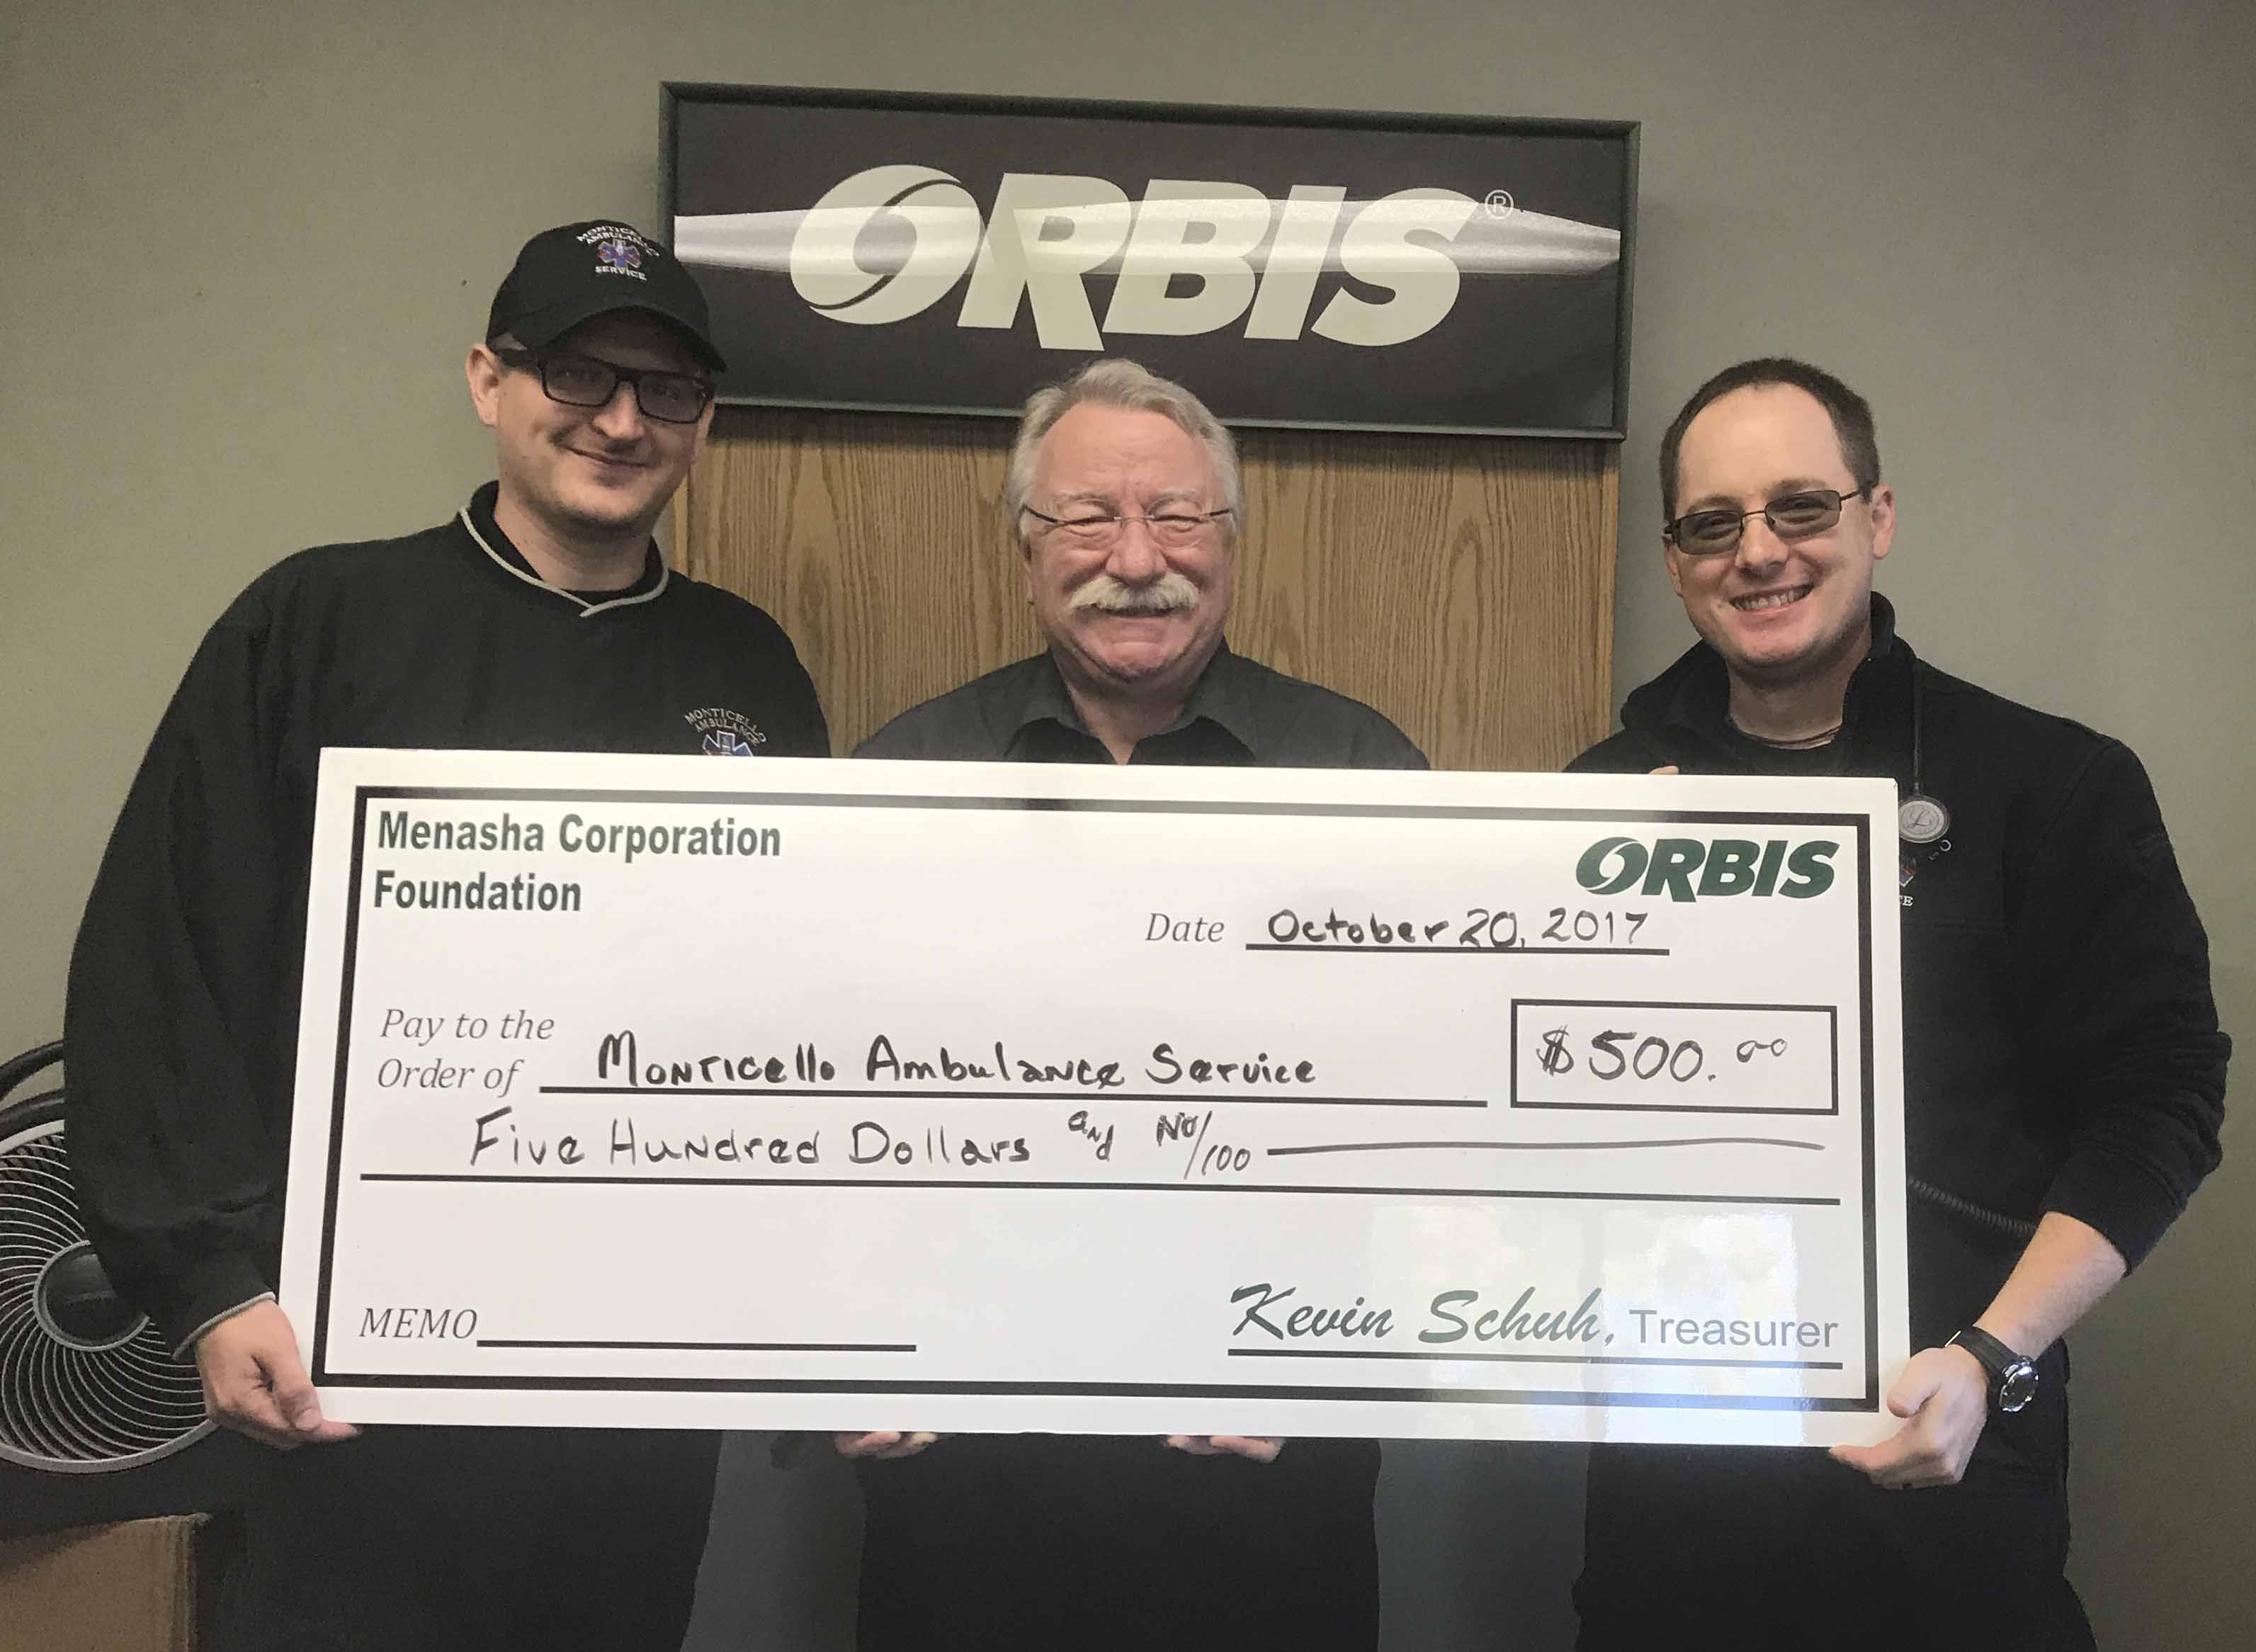 Orbis donated funds to the Monticello Ambulance Service. From left are Brandon Kent, Richard Talcott with Orbis, and Chris Ward. (Photo by Mary Yanda)